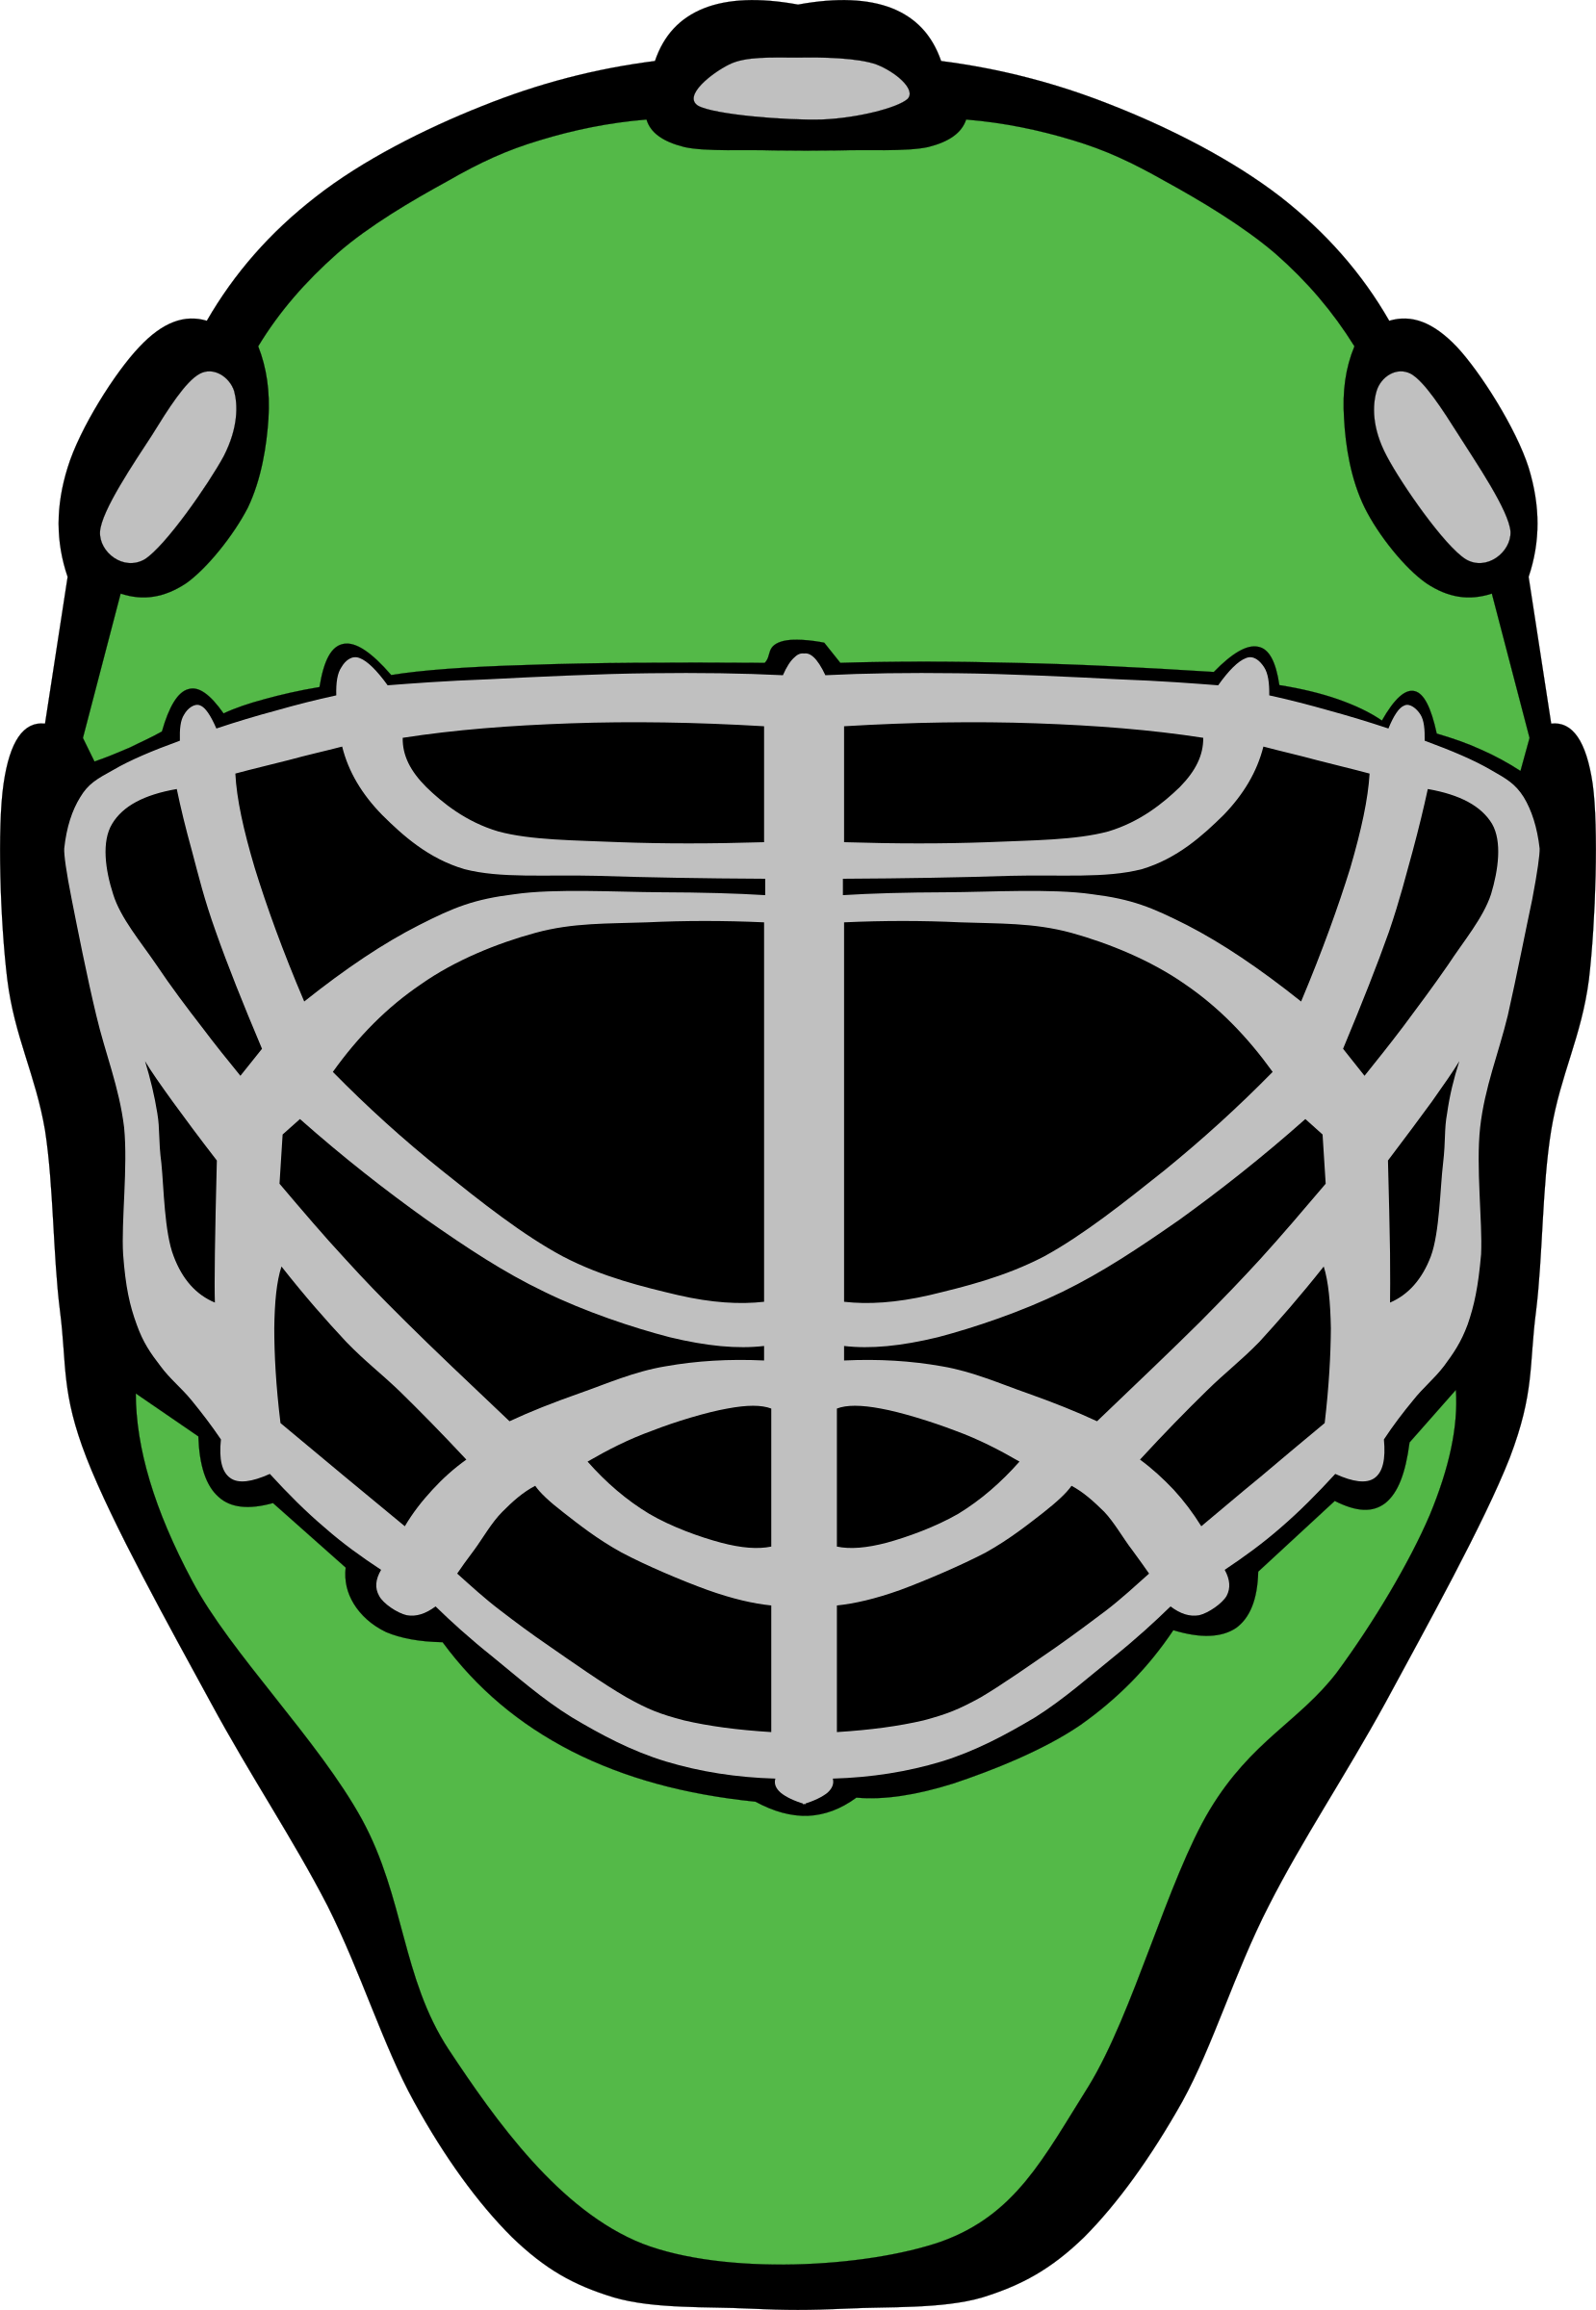 Goalie_mask_simple by Gerald_G